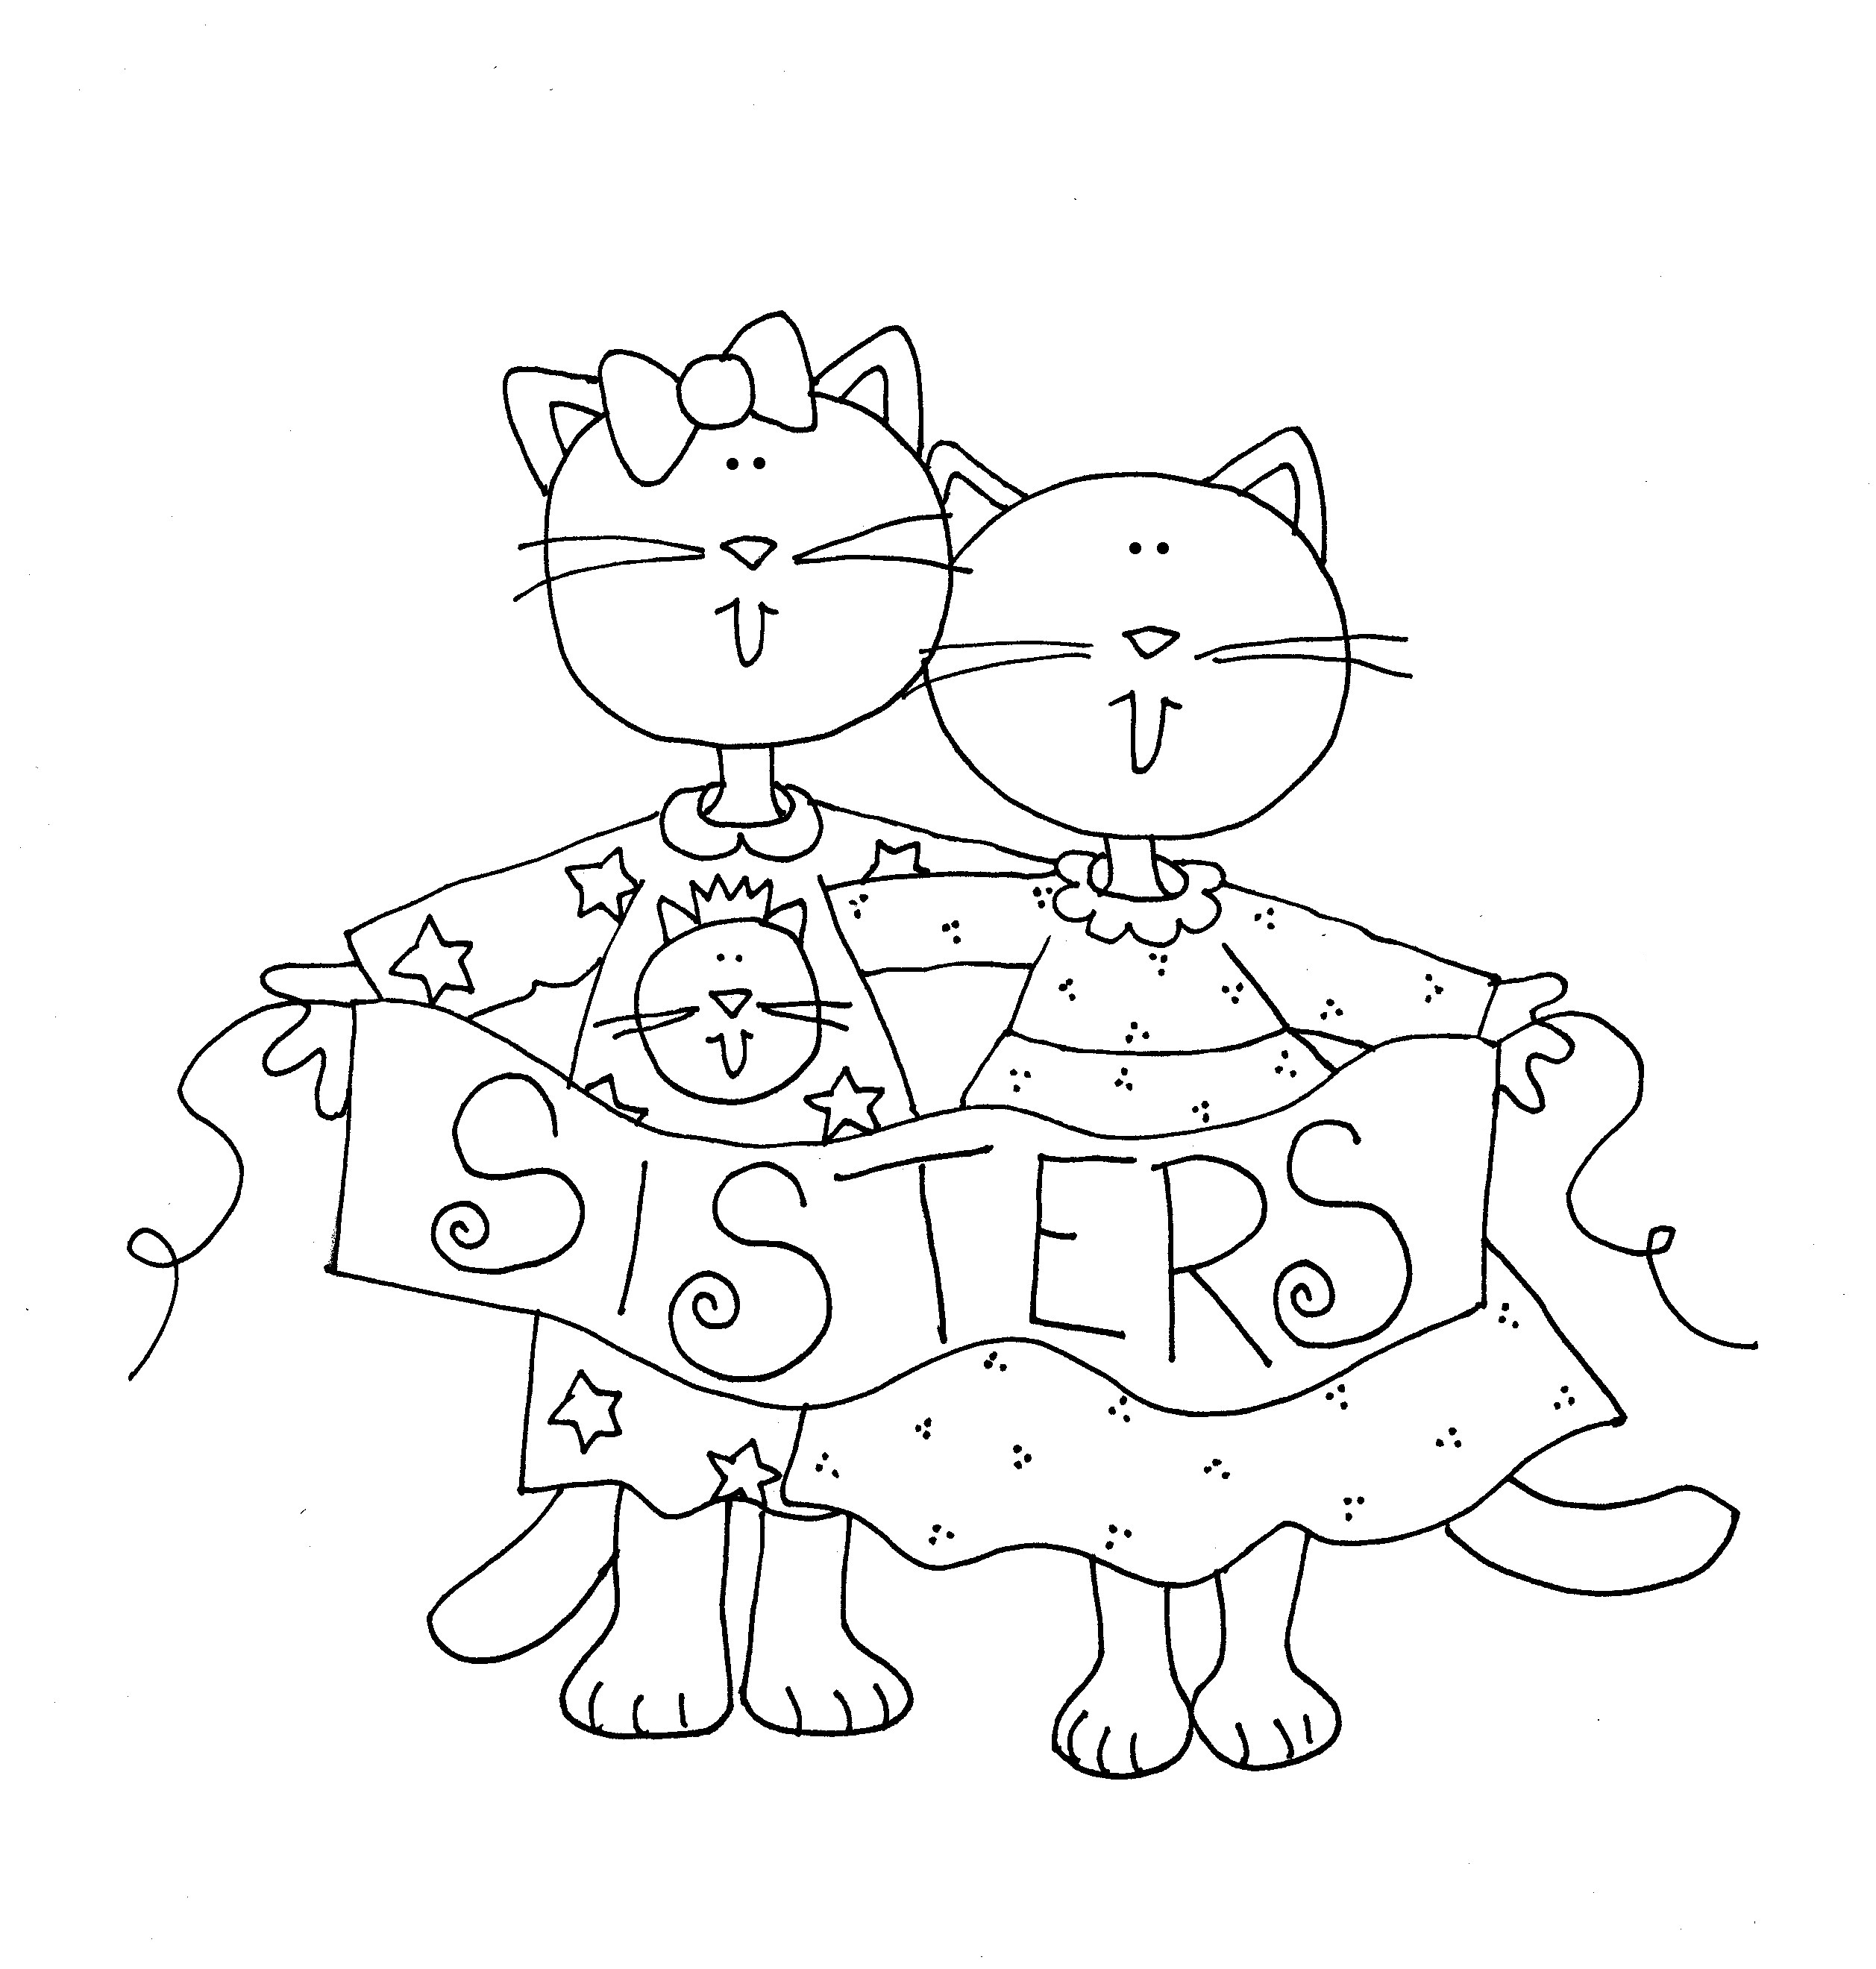 milo cat otis dog coloring pages | Cat Sisters | Dearie Dolls Digi Stamps | Digi stamps ...